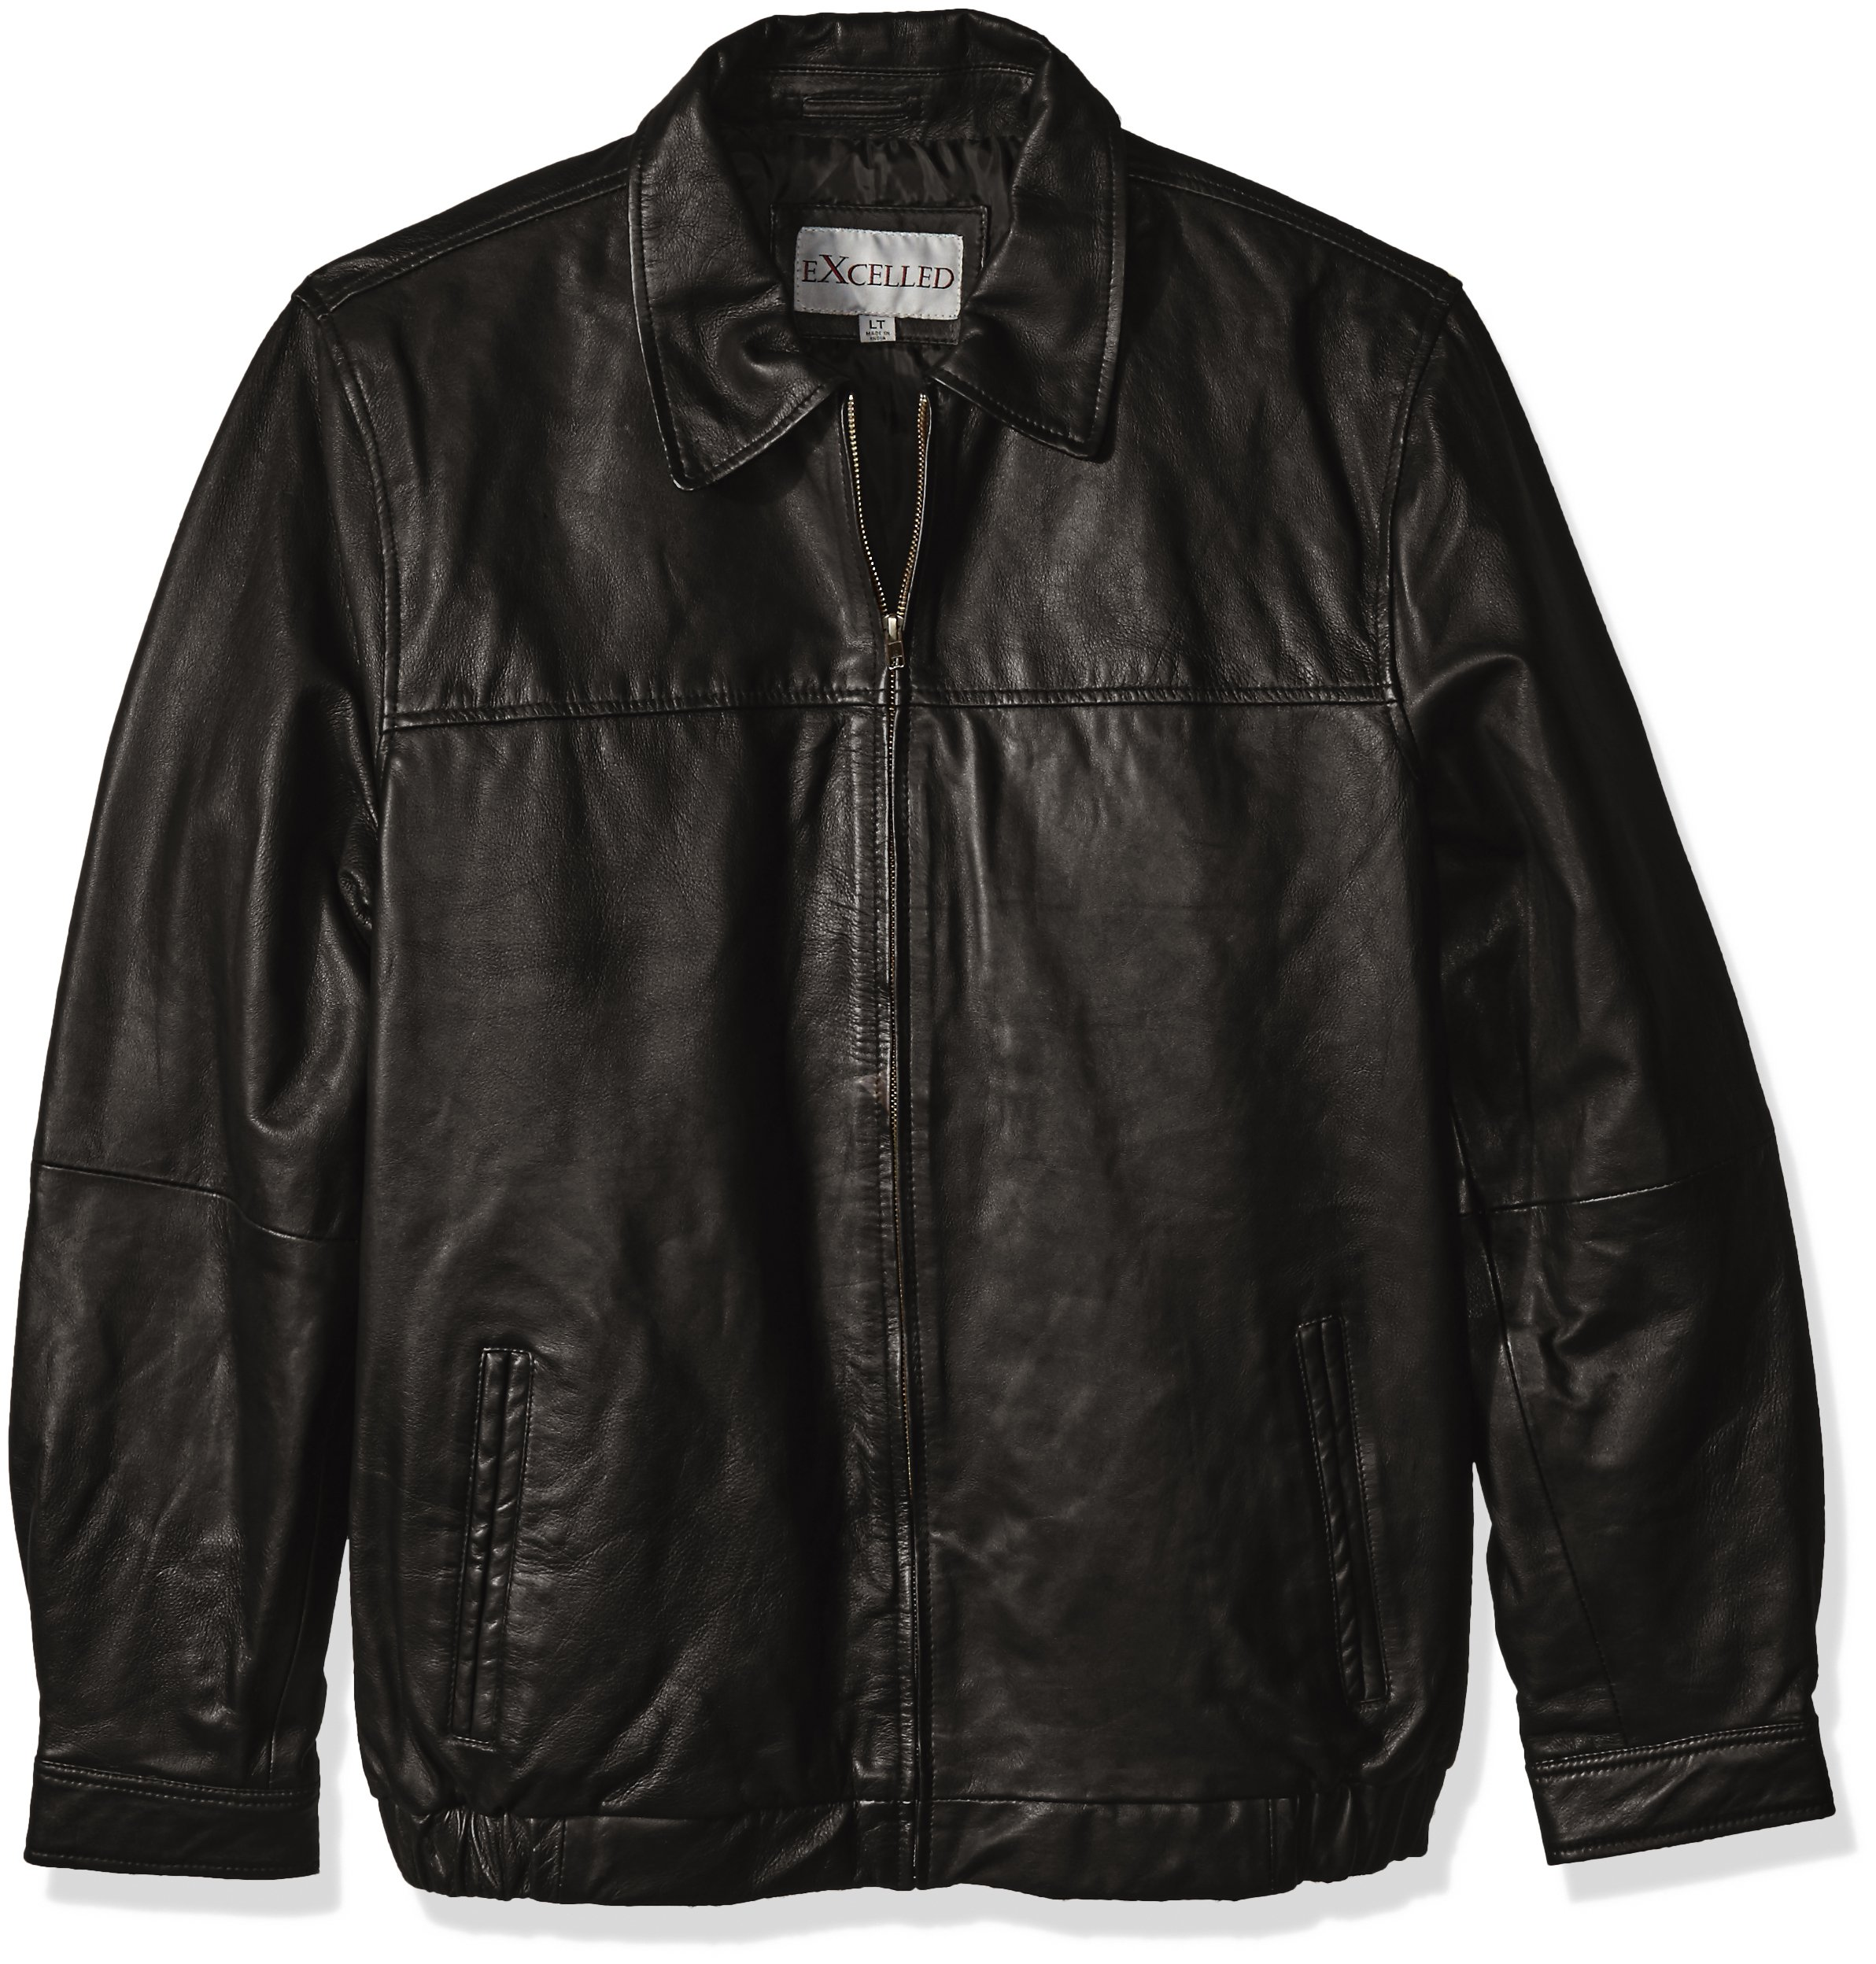 Excelled Men's Big and Tall Shirt Collar Leather Jacket, Black, 2XLT